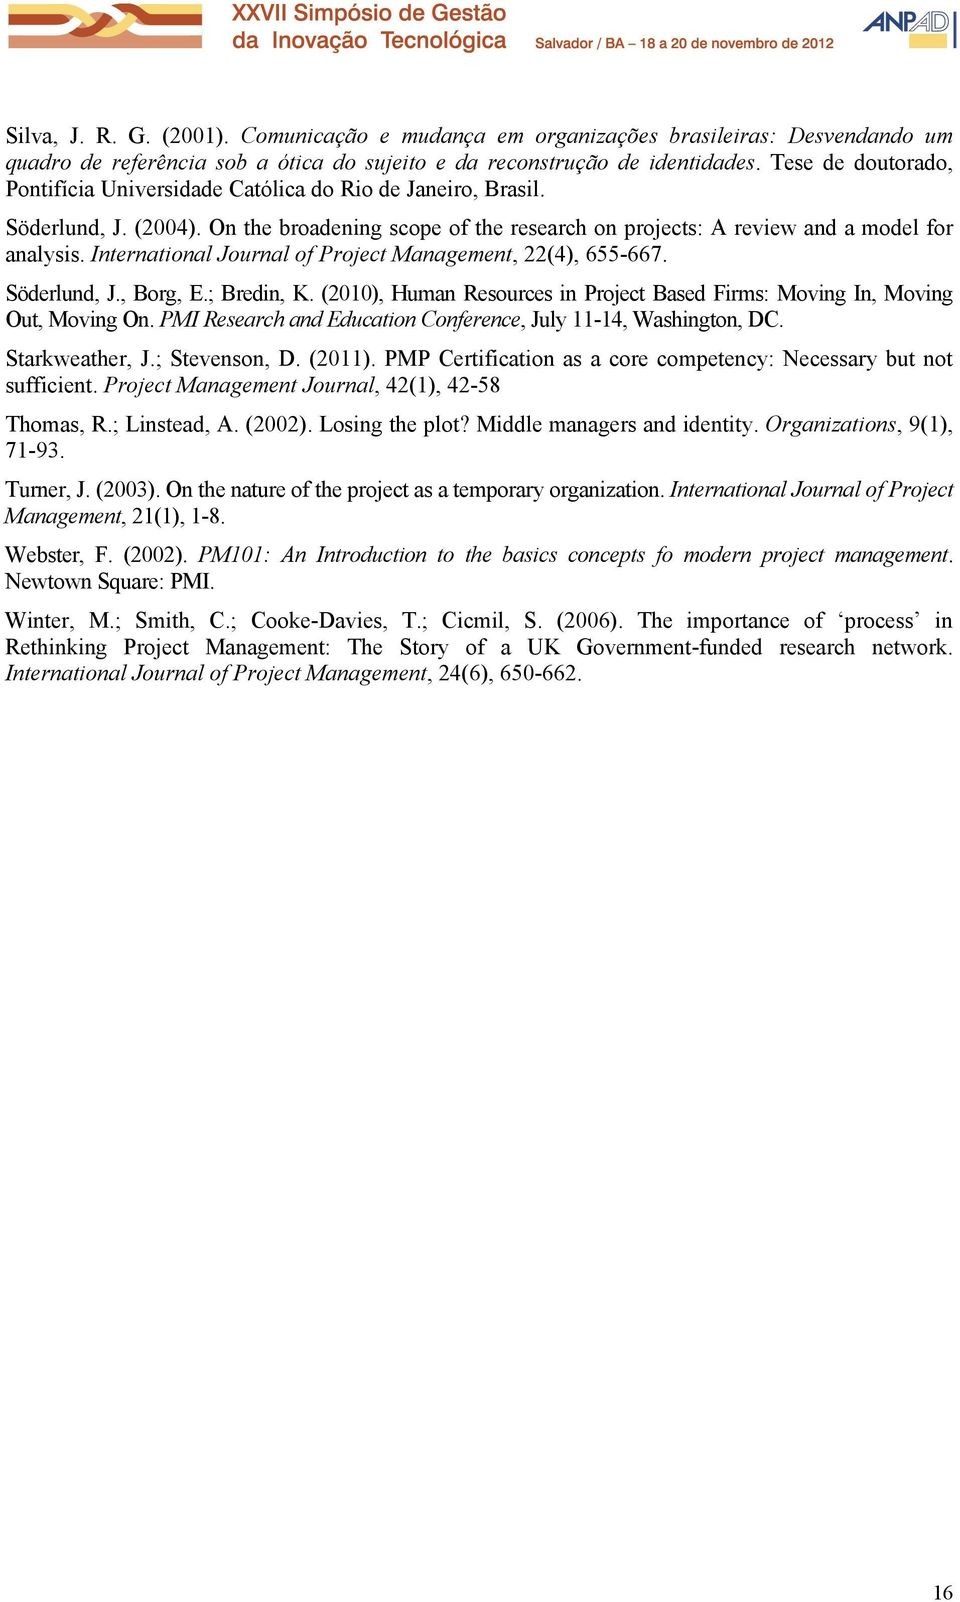 International Journal of Project Management, 22(4), 655-667. Söderlund, J., Borg, E.; Bredin, K. (2010), Human Resources in Project Based Firms: Moving In, Moving Out, Moving On.